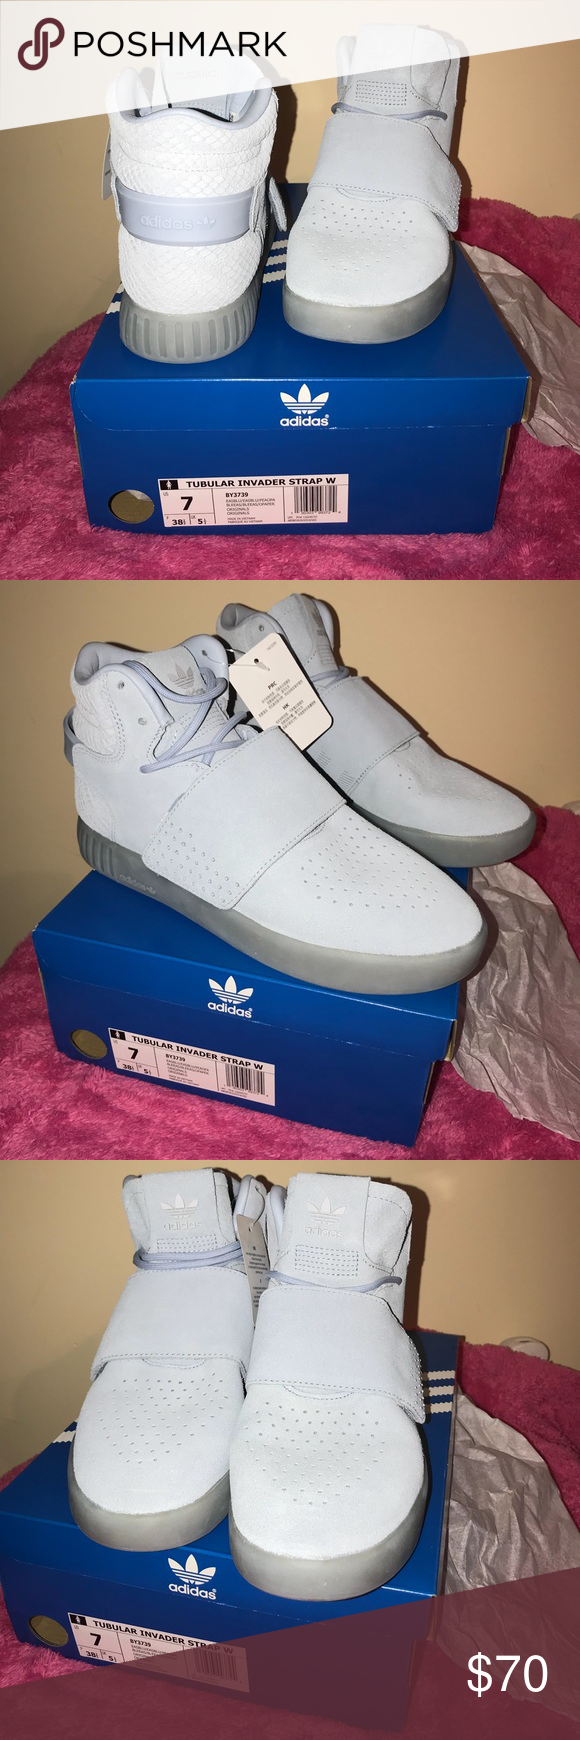 Adidas Tubular Invader Strap Women Sneakers Women s 🚺 Adidas Suede Light  Blue Strap Sneakers W  Snake skin pattern NWT - (New With Tags) Size  US•7  F• 38 ... db13f89b3